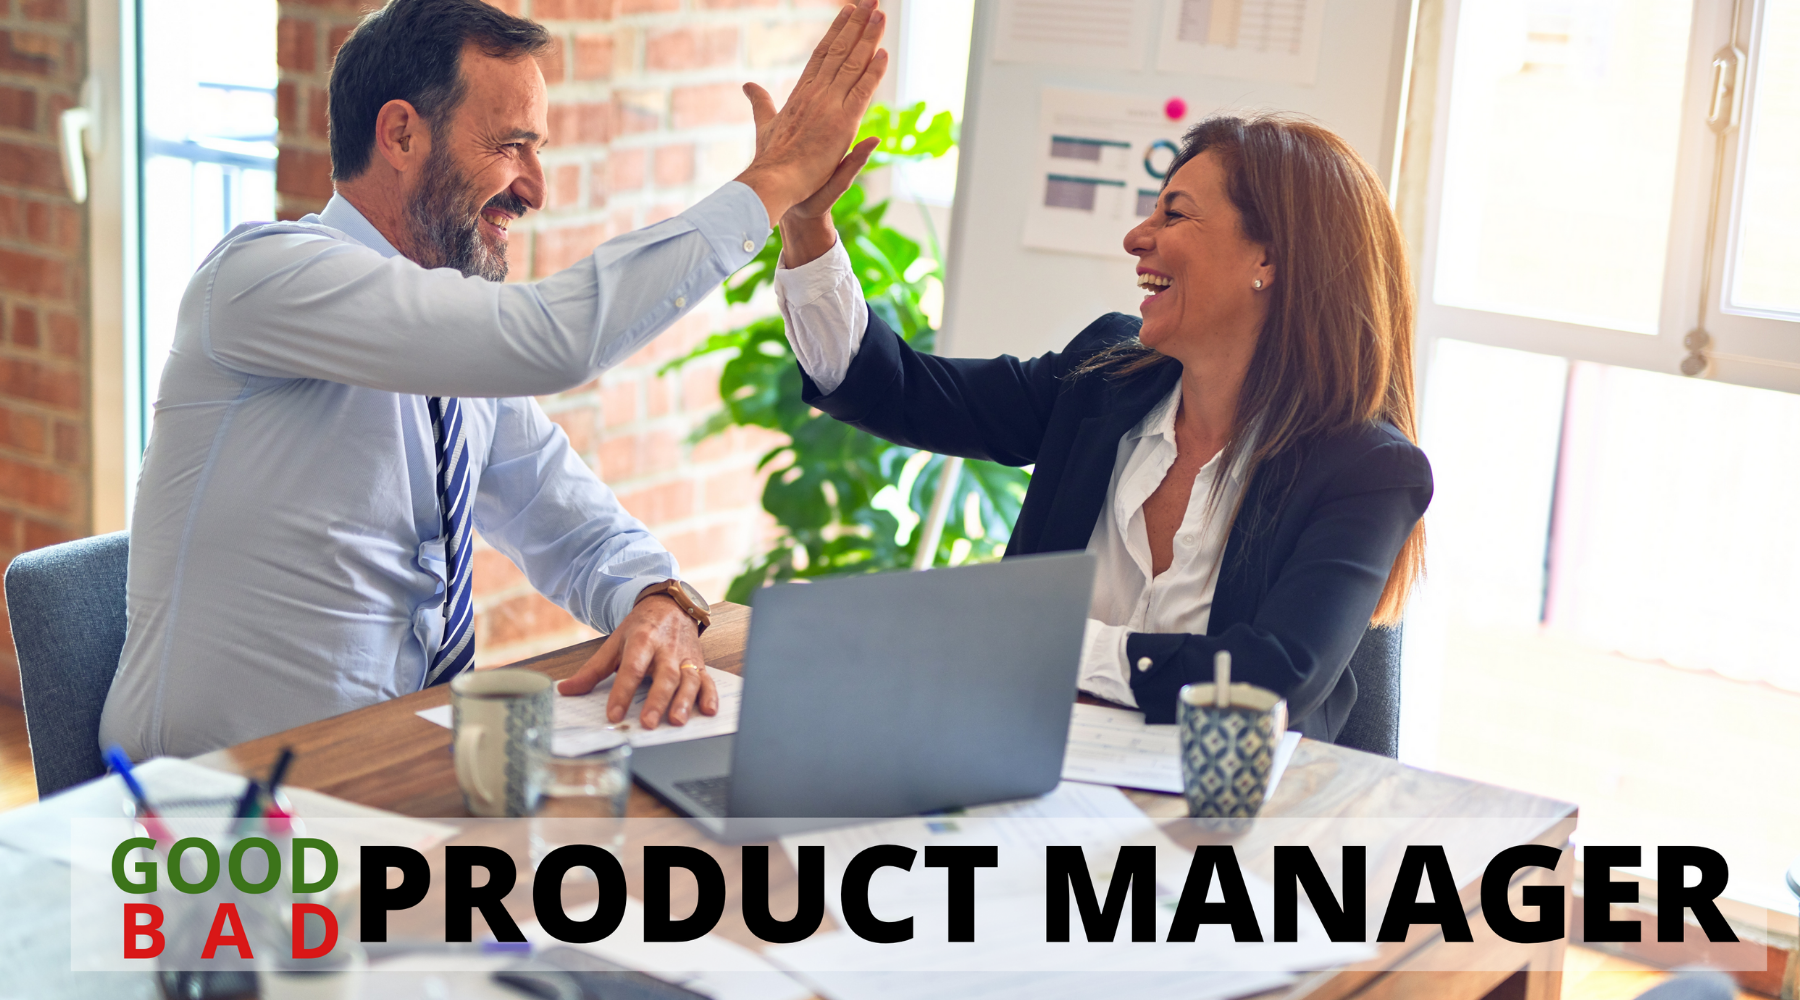 What Defines a Good Product Manager and a Bad Product Manager